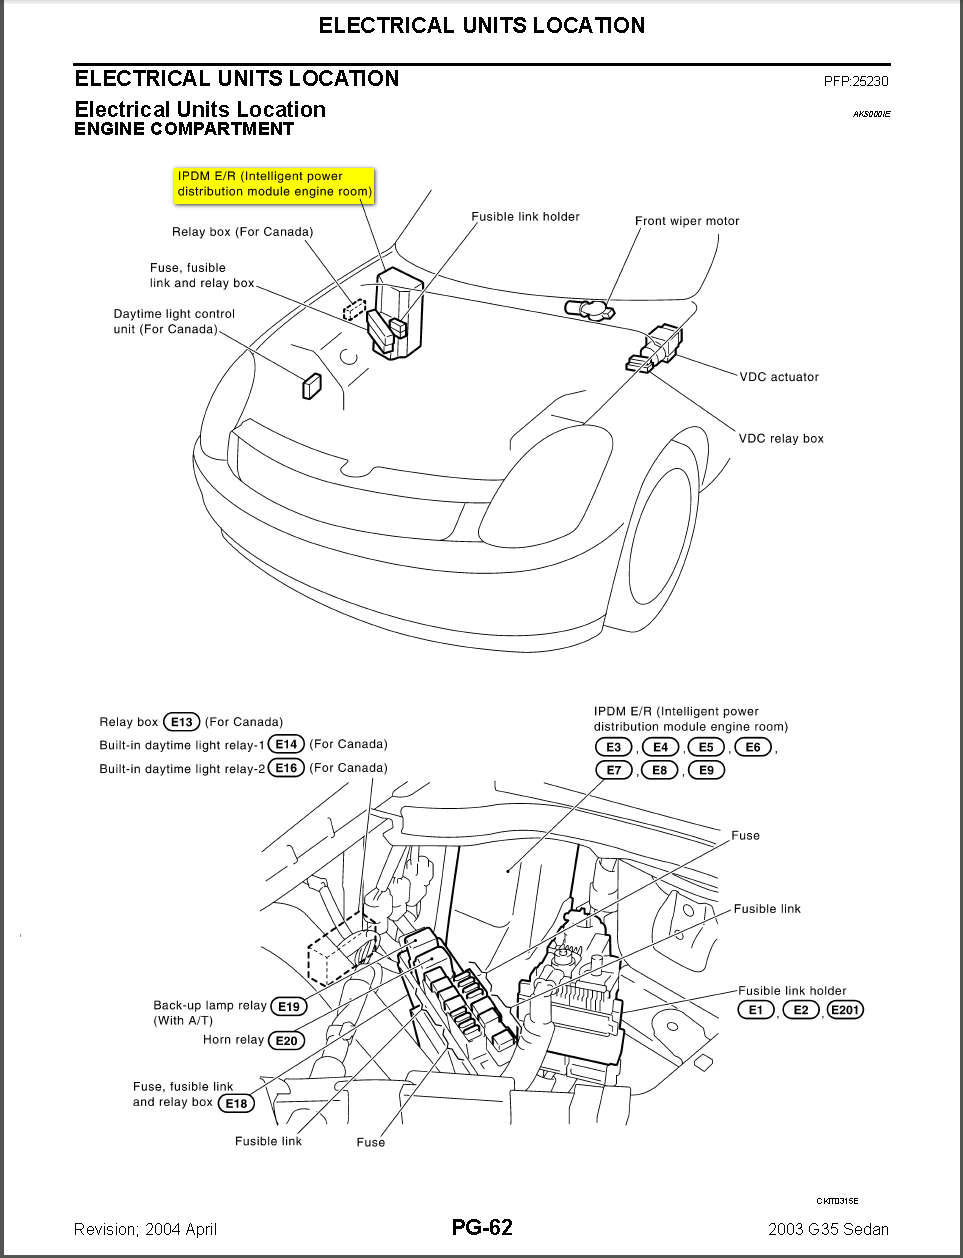 Infiniti G35 Engine Diagram Details Reinvent Your Wiring 1999 Dodge Intrepid Sedan Transmission Fuse Box Image Rh Motogurumag Com Parts